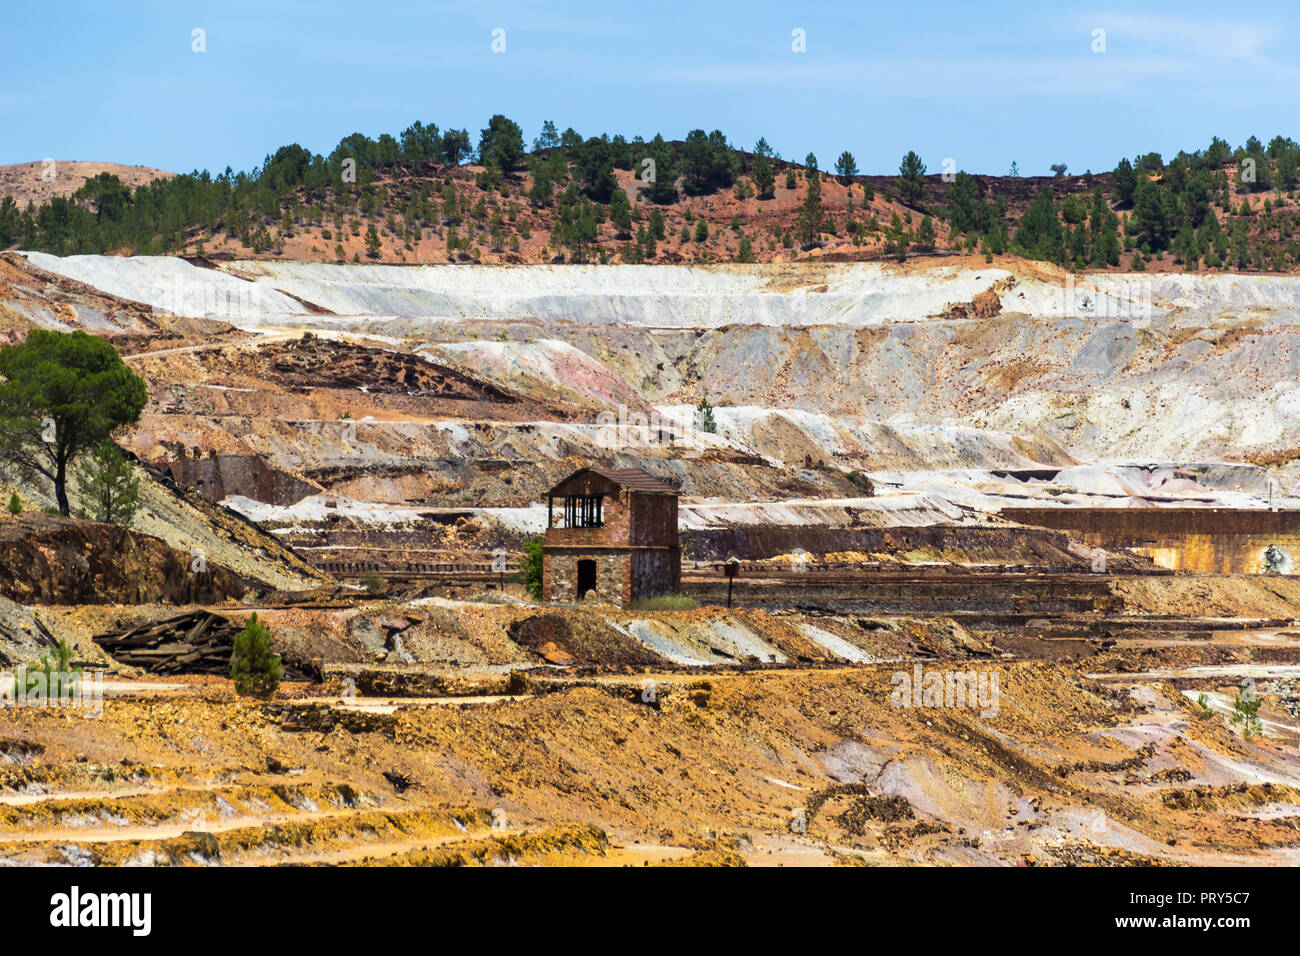 Old building in mining area - Stock Image